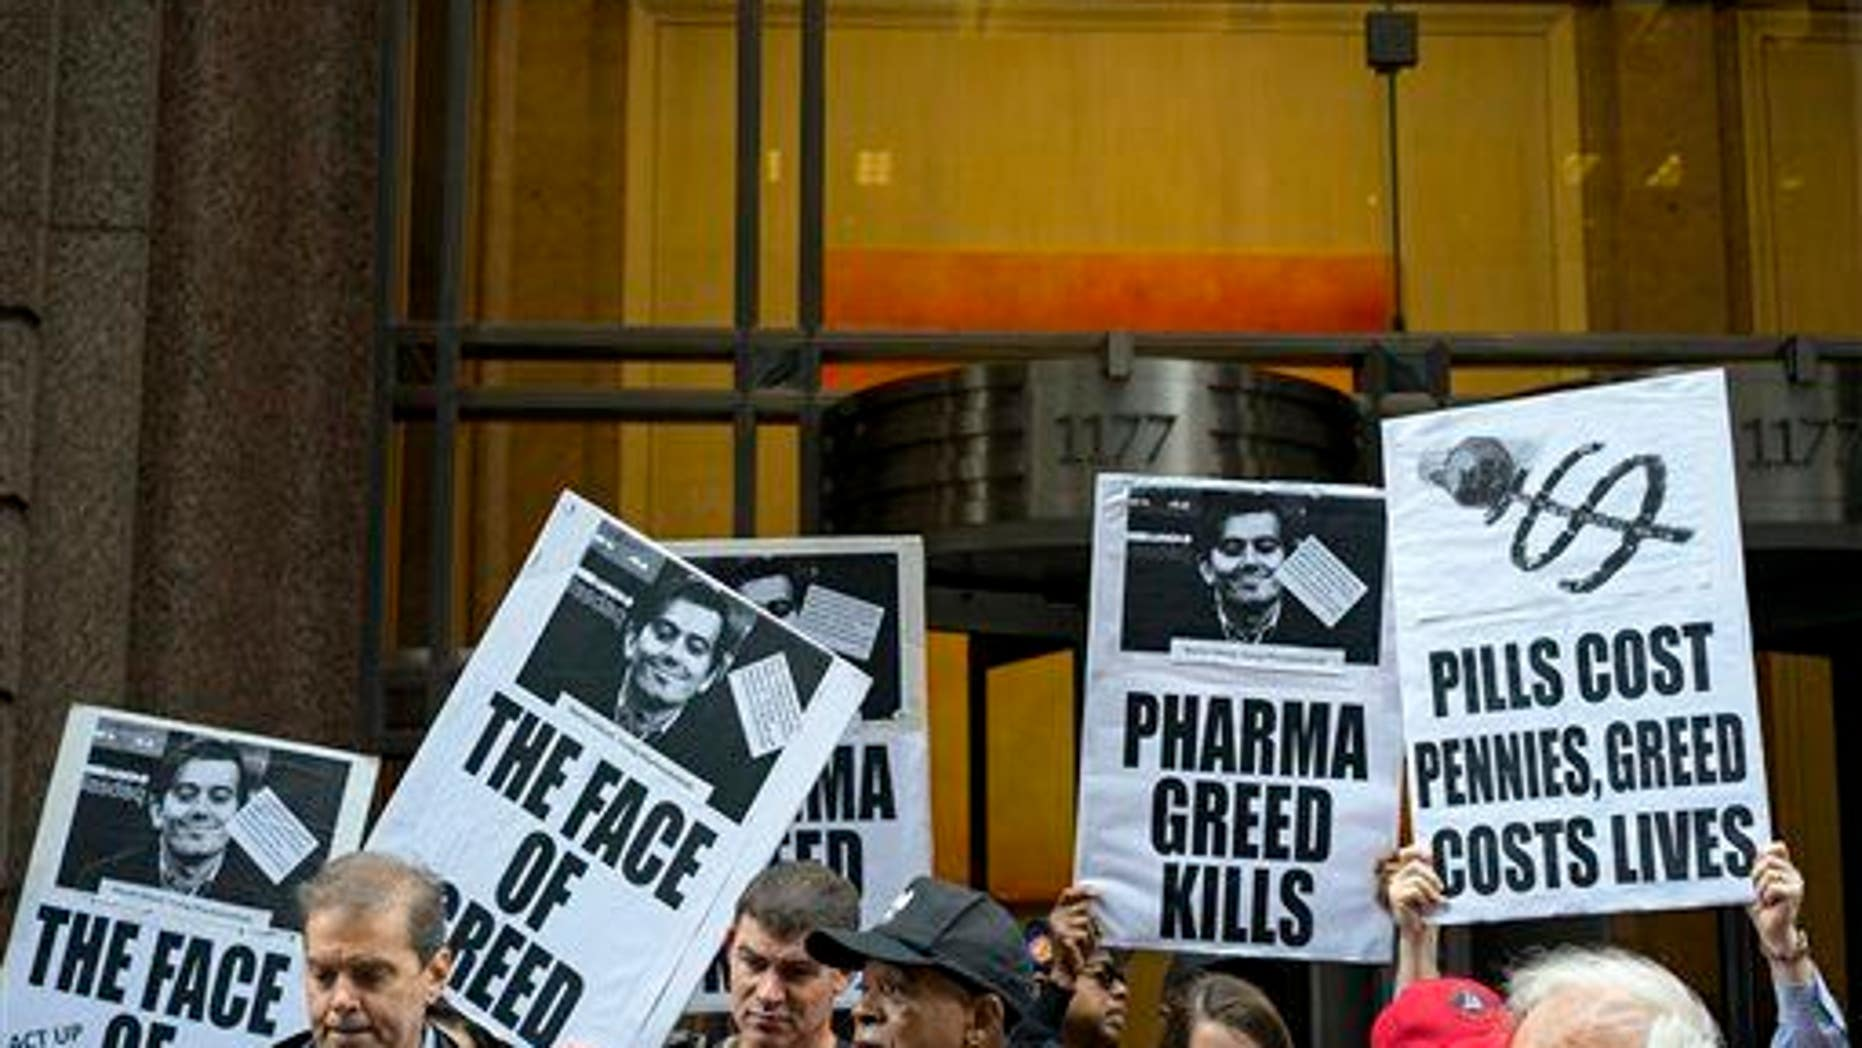 Activists hold signs containing the image of Turing Pharmaceuticals CEO Martin Shkreli in front of Turing's offices in New York on Oct. 1, 2015, during a protest.